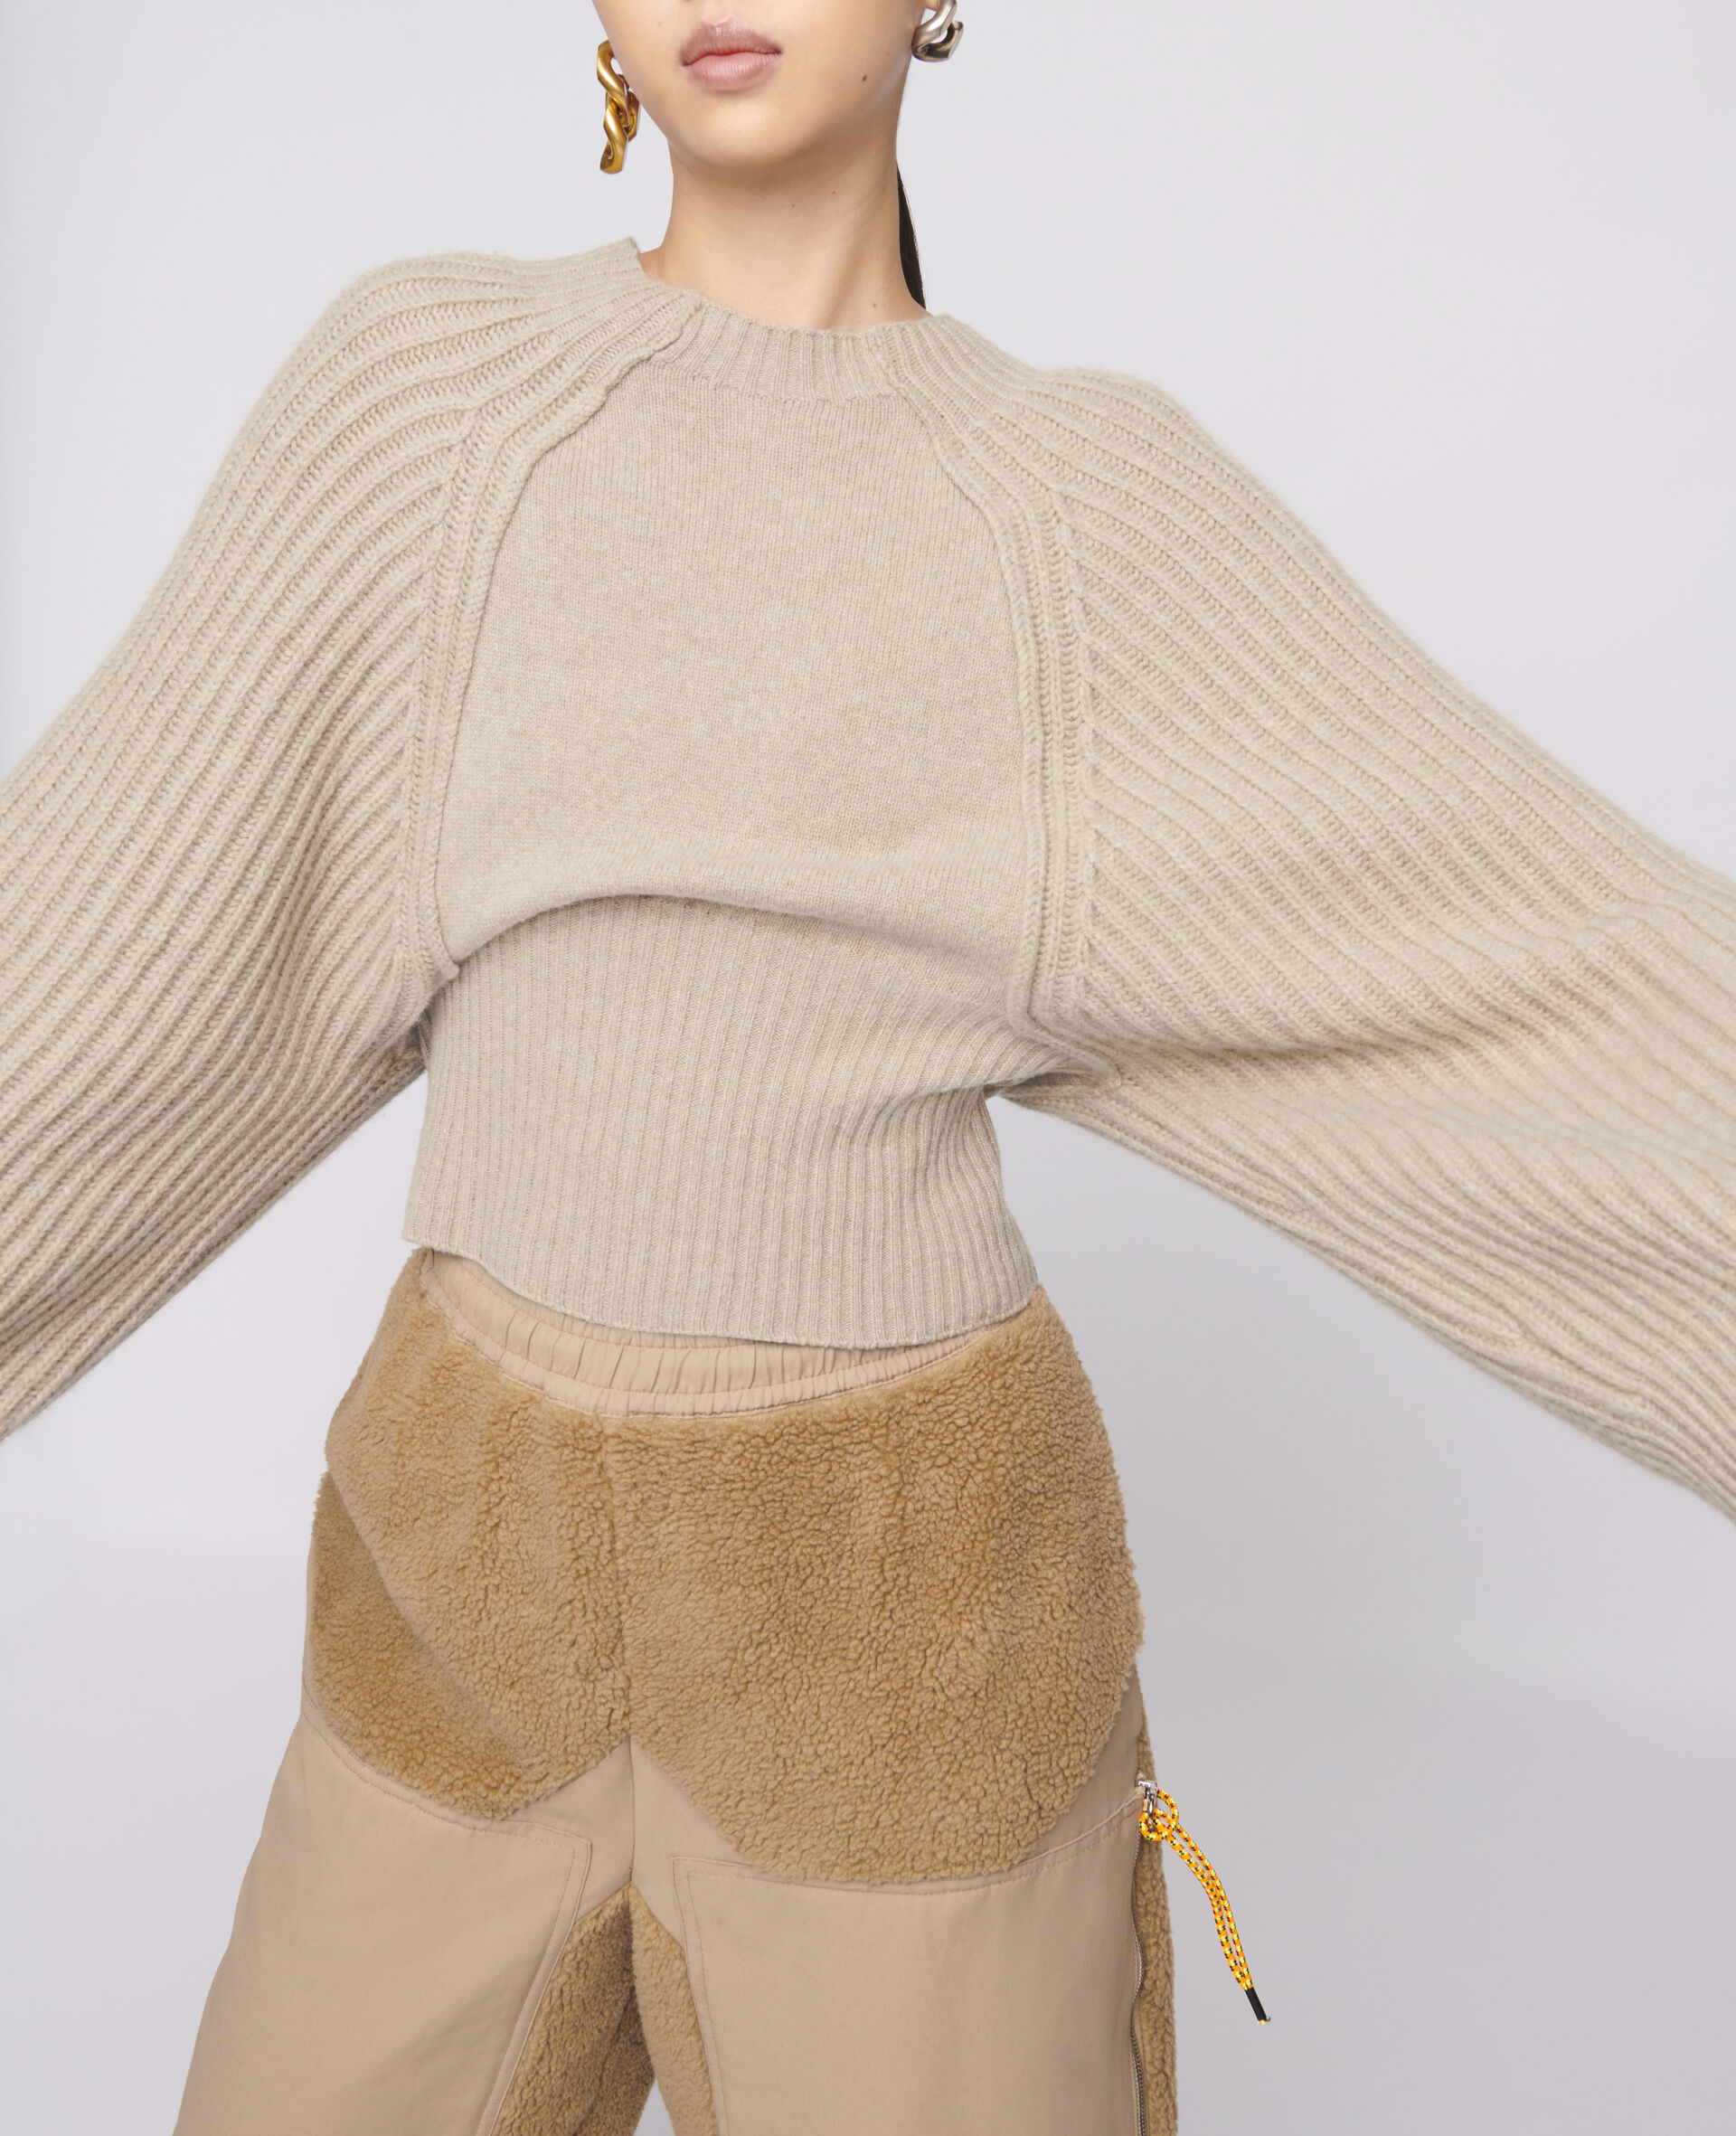 Cropped Knit Sweater -Beige-large image number 3